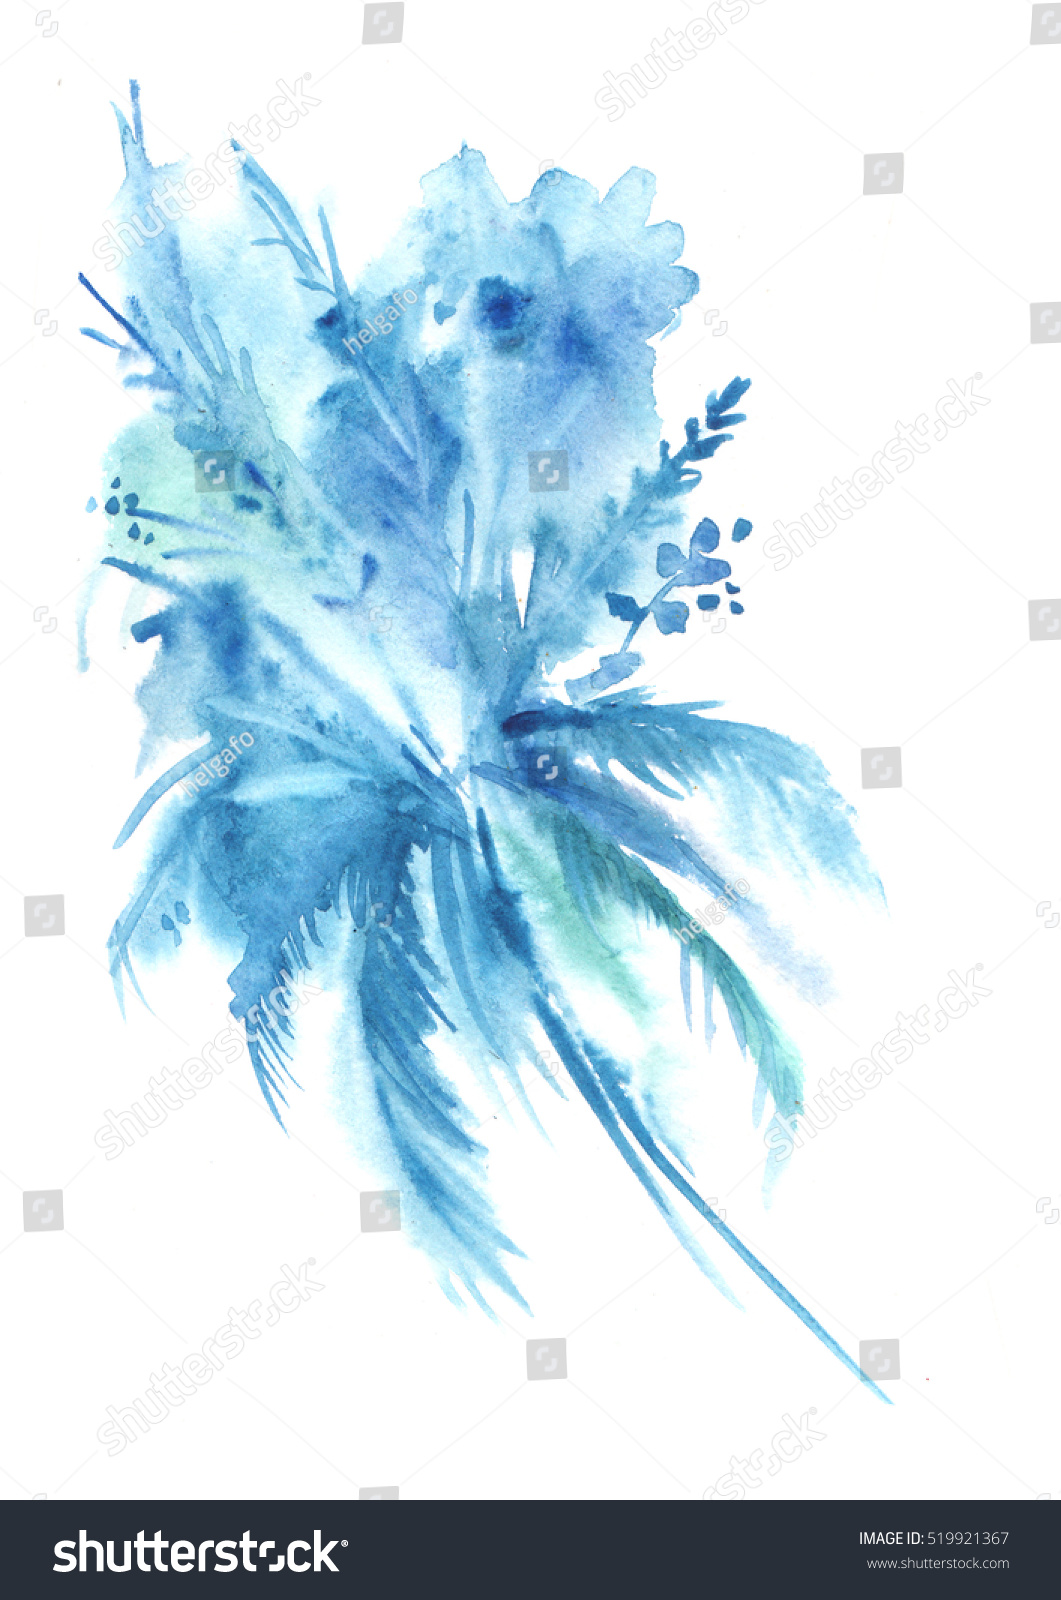 Watercolor Illustration Abstract Blue Flowers Vintage Stock